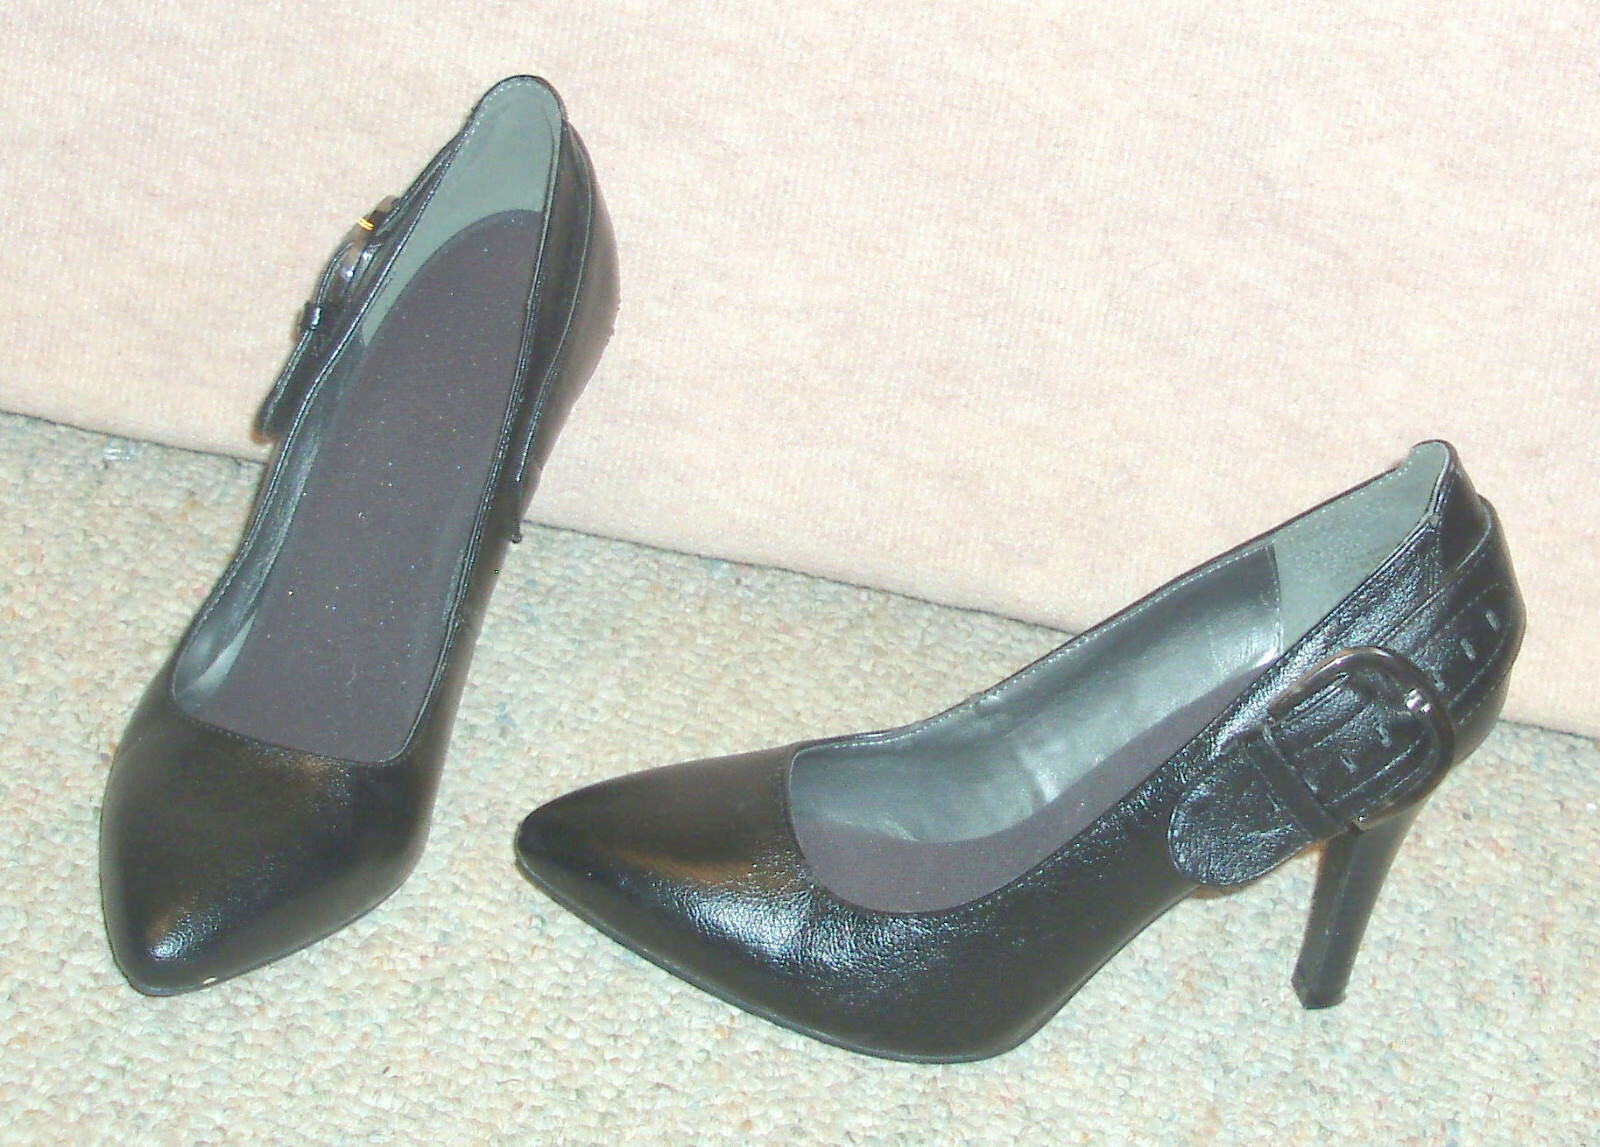 Women's black WORTHINGTON  slip on shoes / pumps 7 / heels , sz 7 pumps M ea68bc